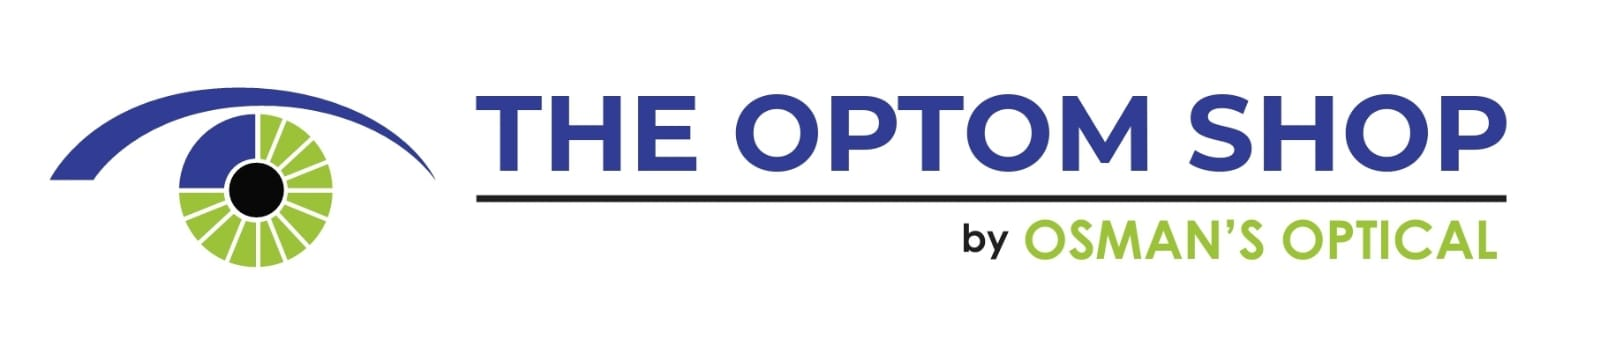 The Optom Shop by Osman's Optical. Contact Lenses Frames and Sunglasses Online Logo